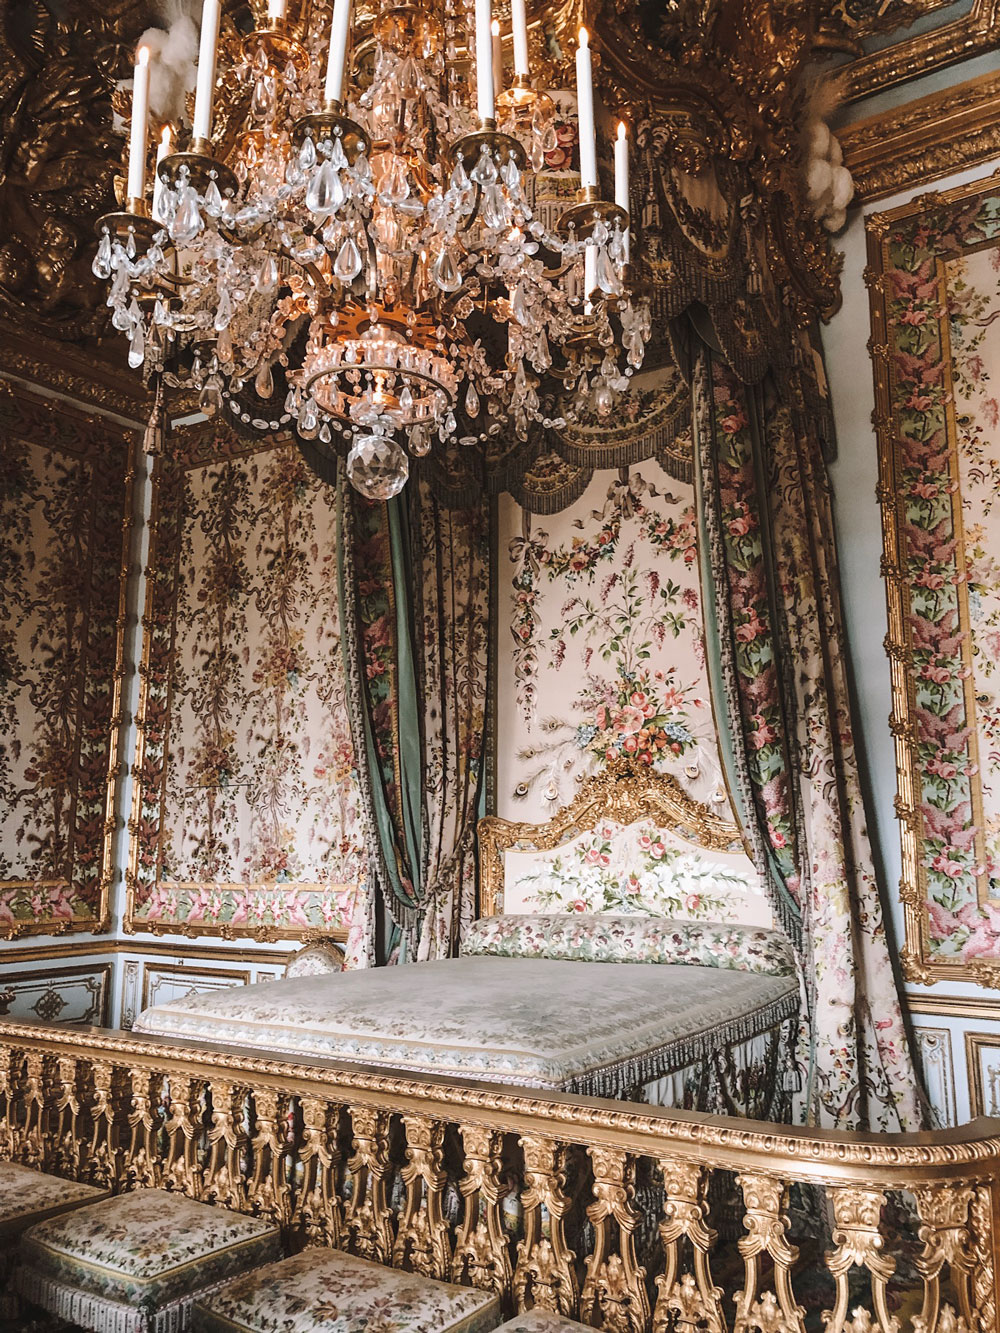 a bedroom fit for a queen at the Palace of Versailles